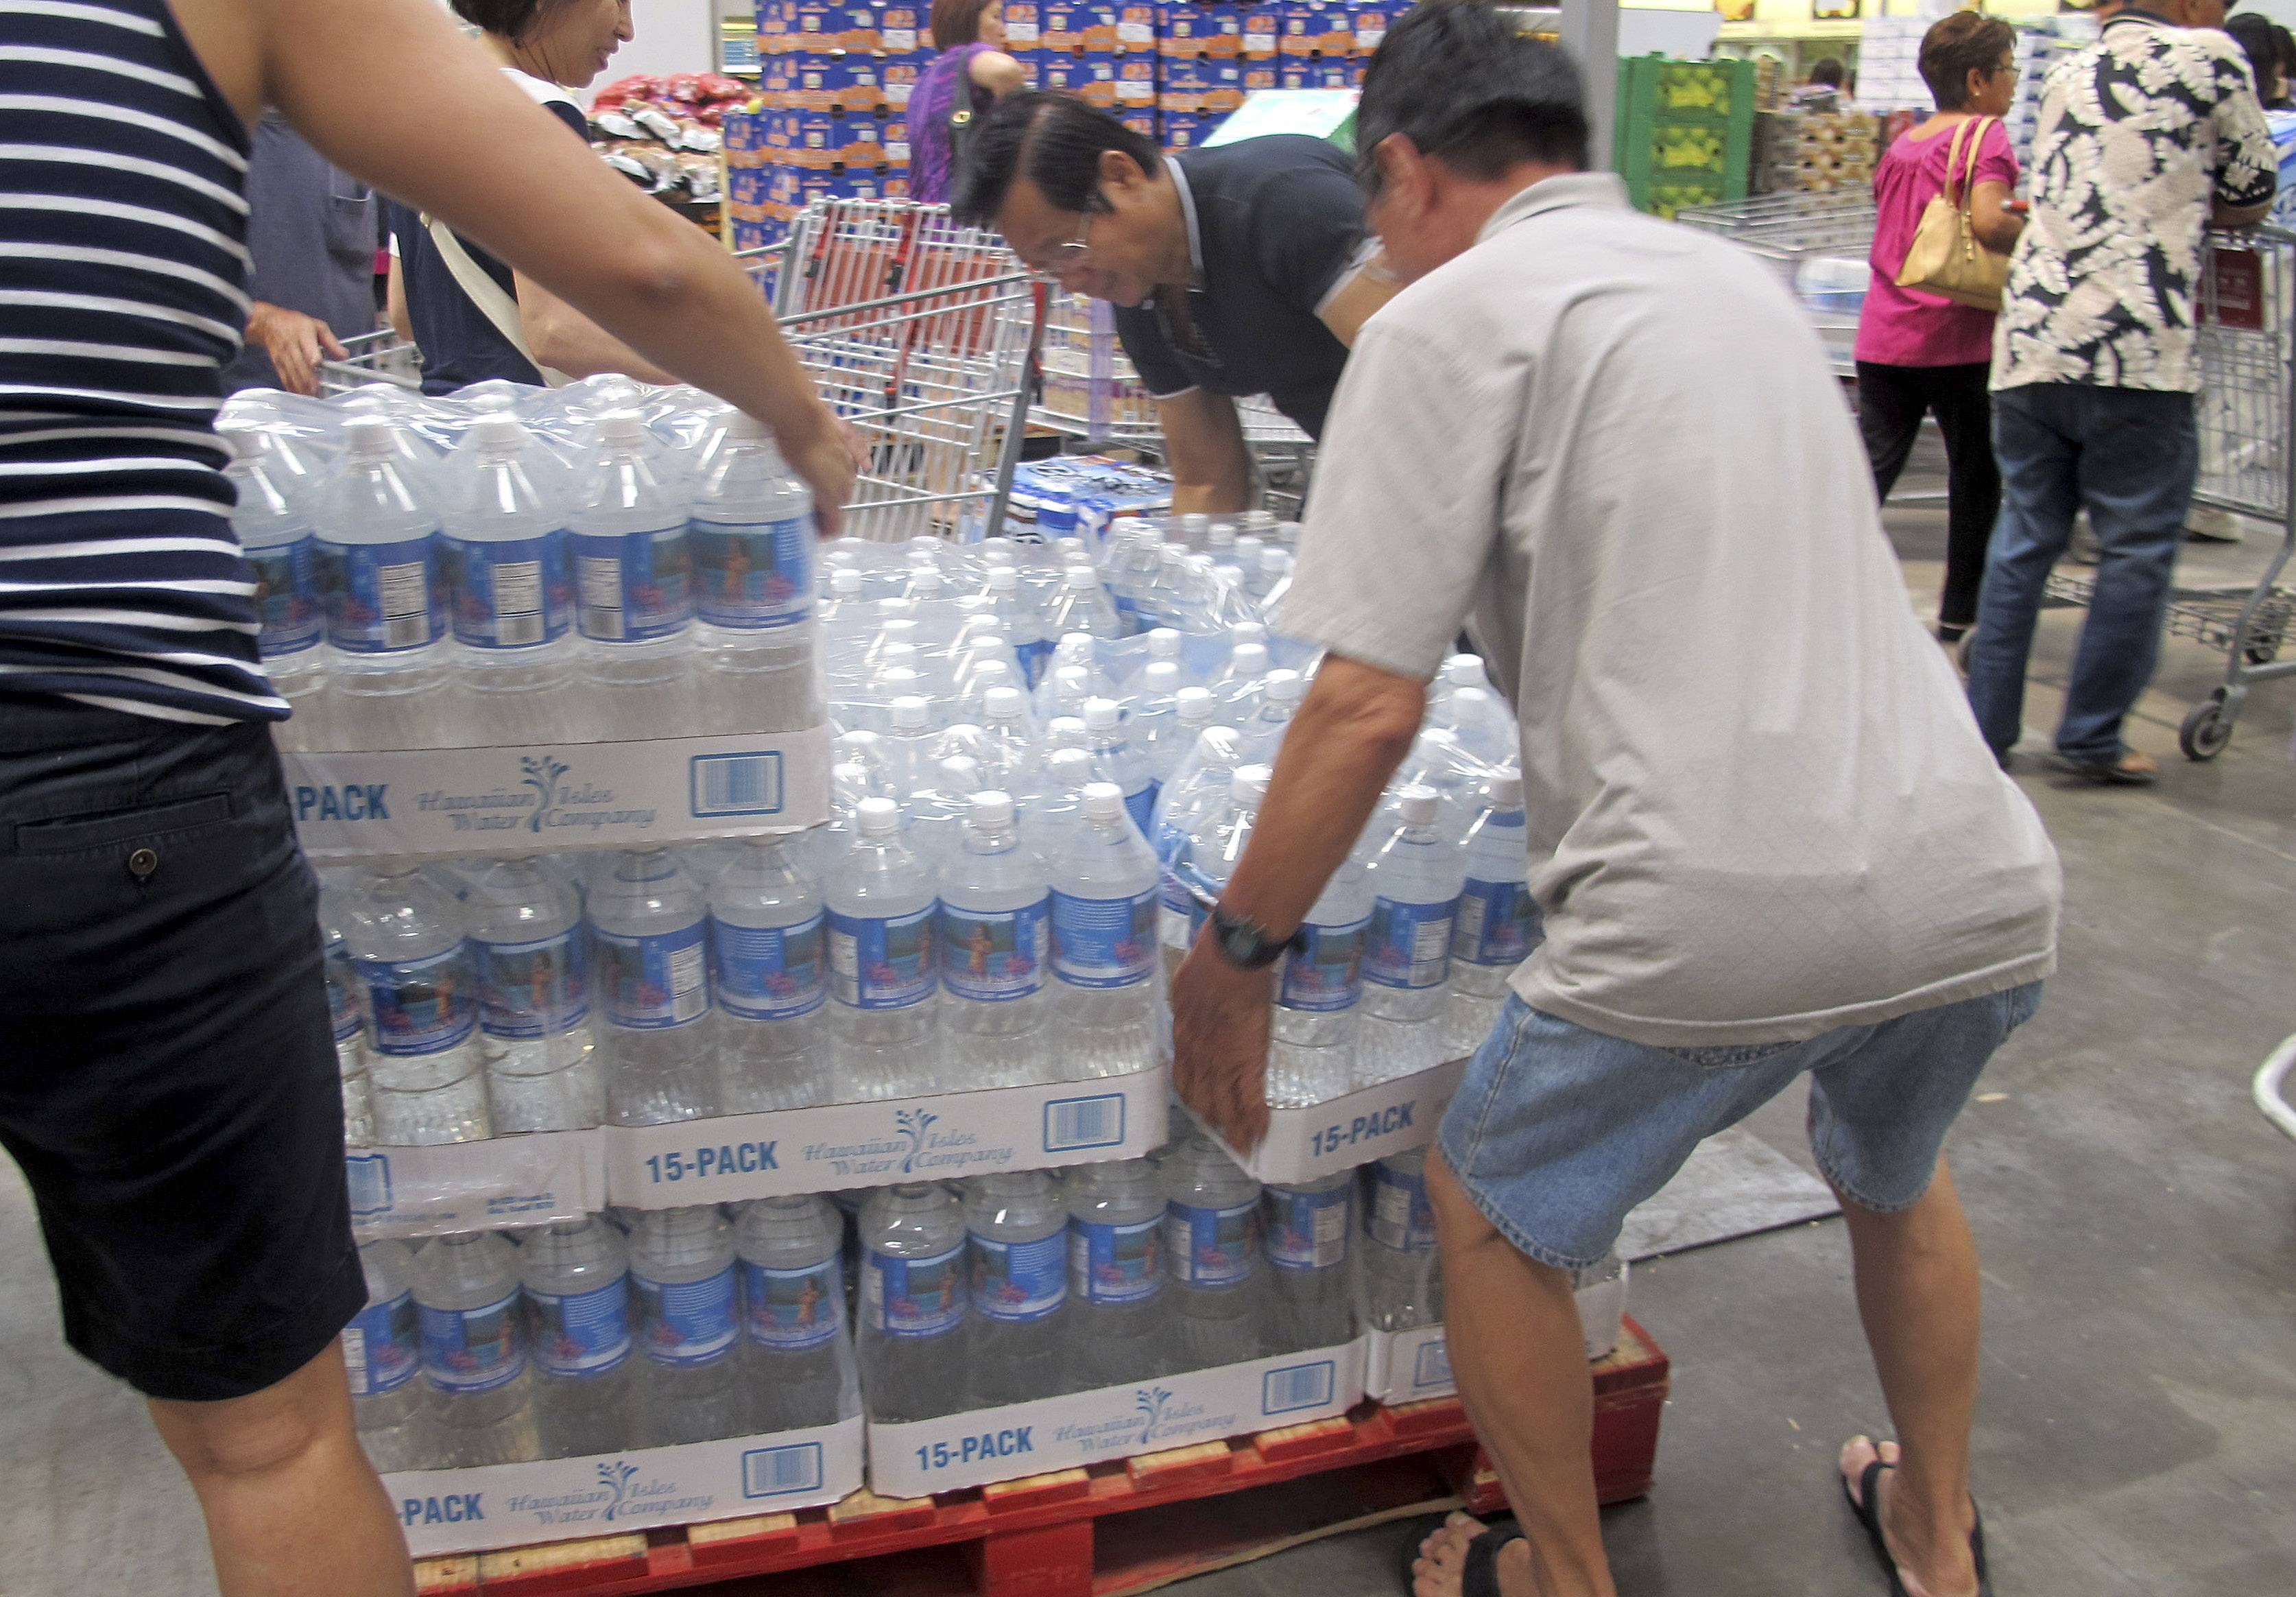 Shoppers grab cases of bottled water Tuesday in preparation for a hurricane and tropical storm heading toward Hawaii at the Iwilei Costco in Honolulu.